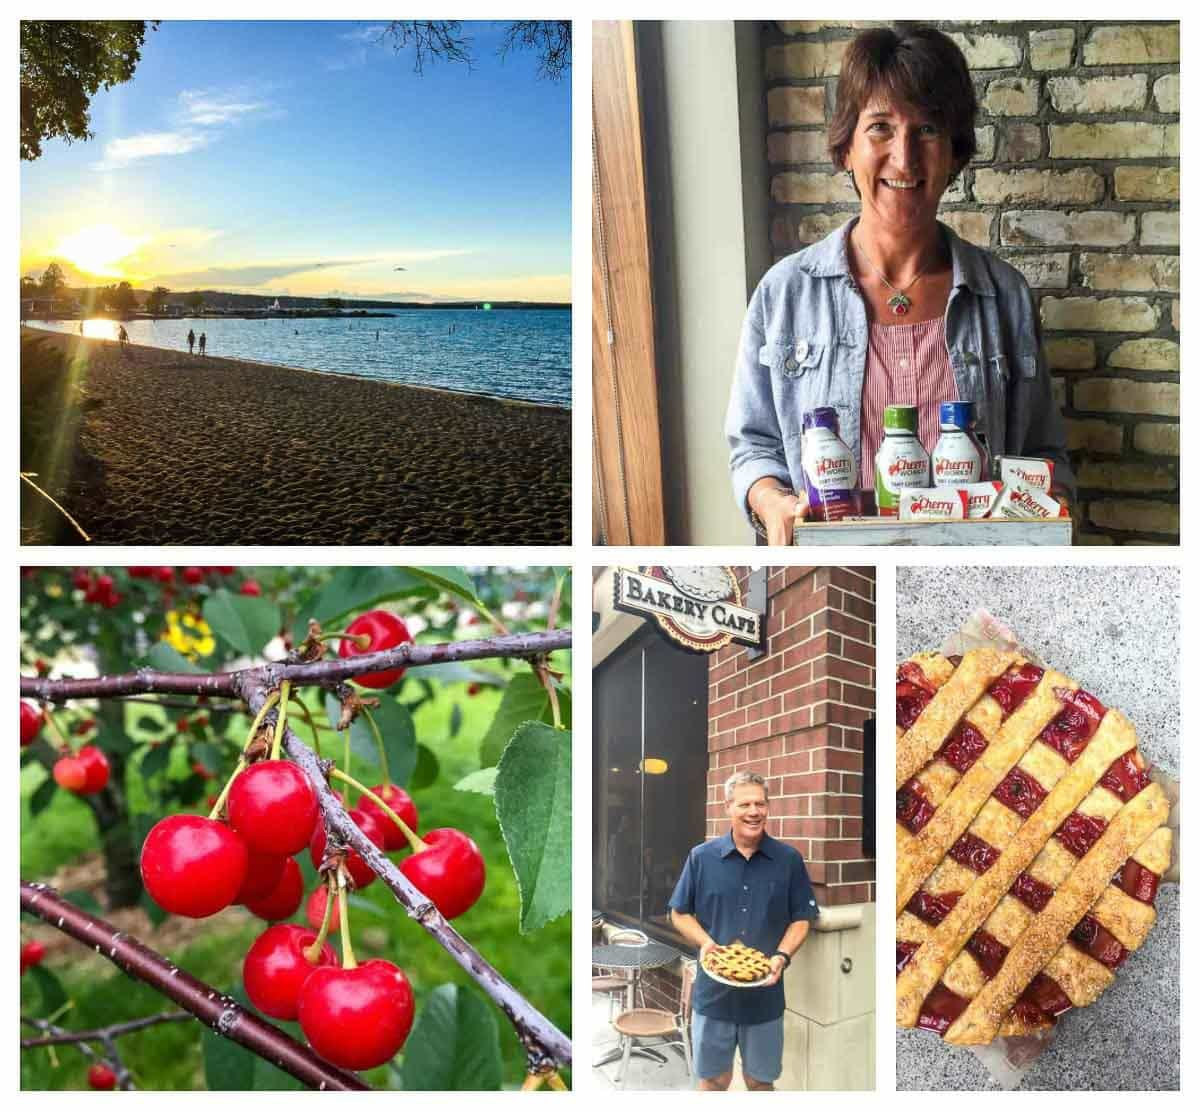 Highlights of the National Cherry Festival in Traverse City Michigan